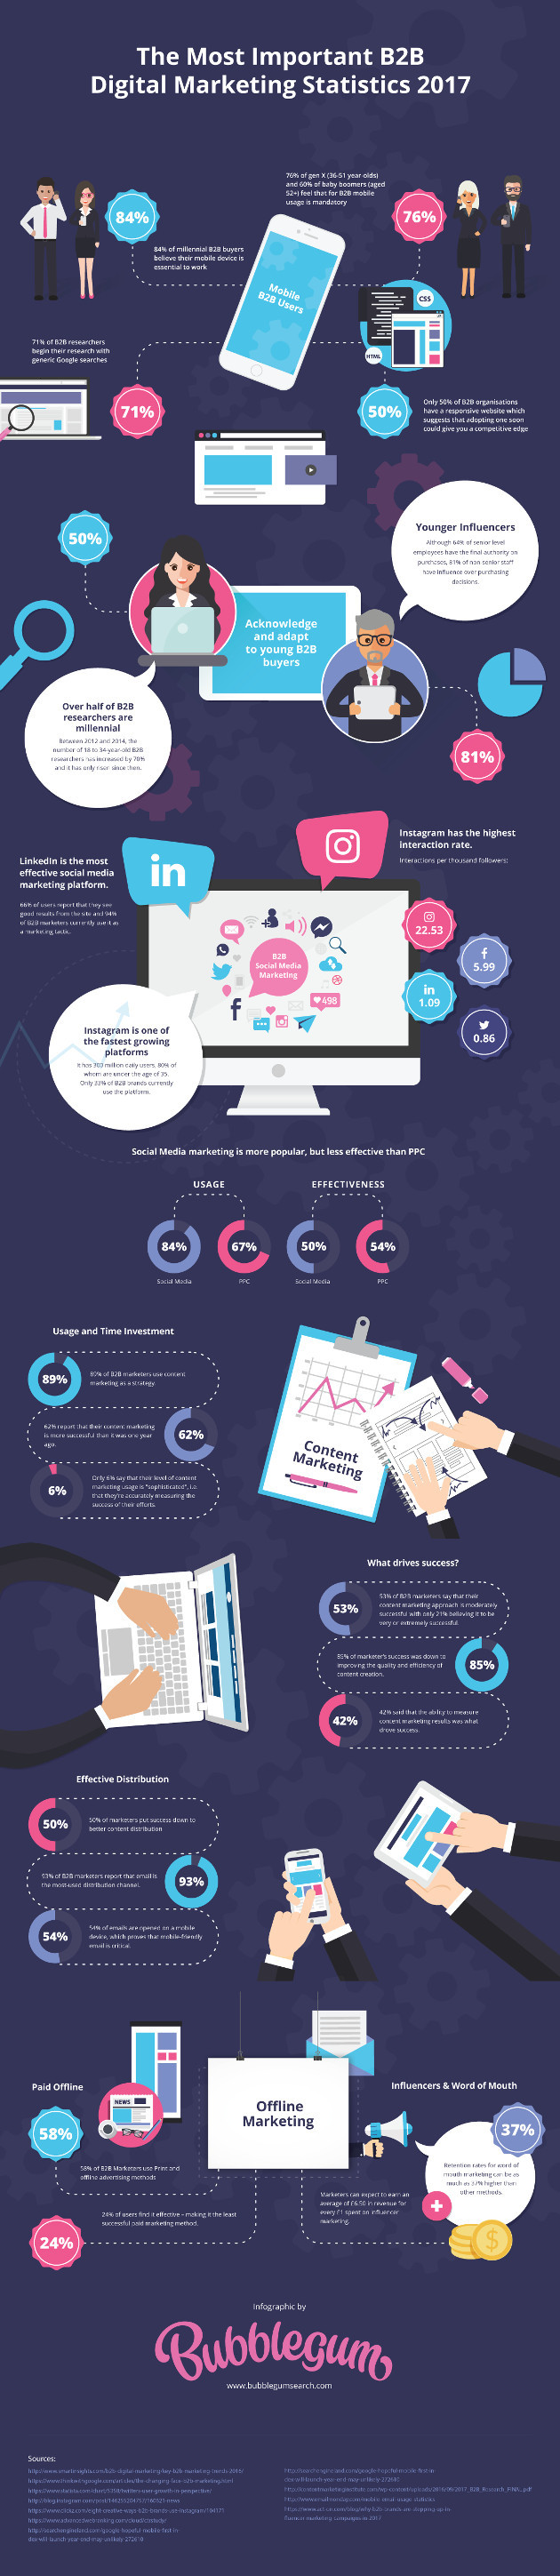 digital marketing trends for small tech companies